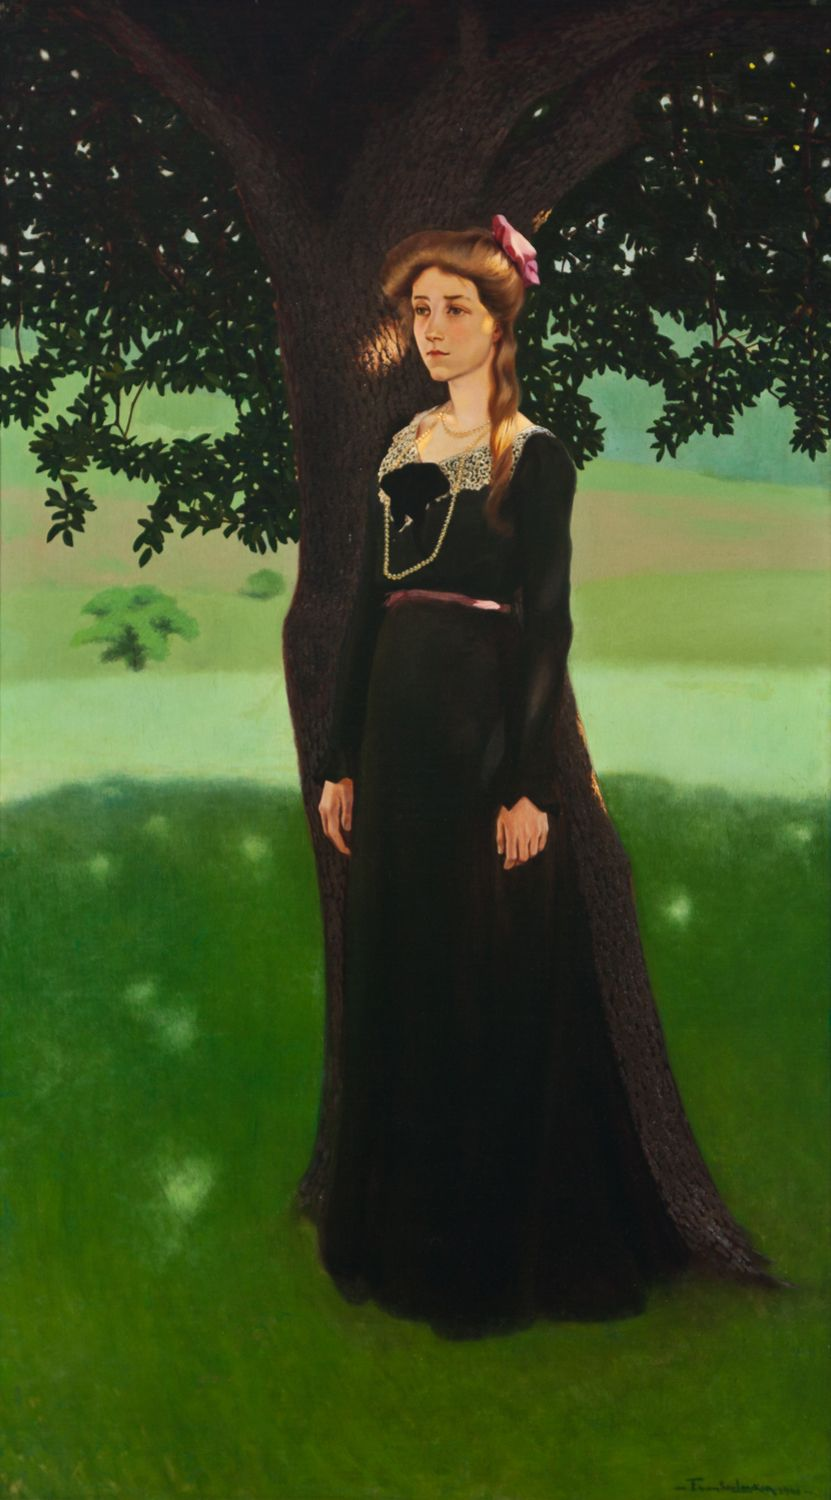 Portrait of a Woman by a Tree, about 1900